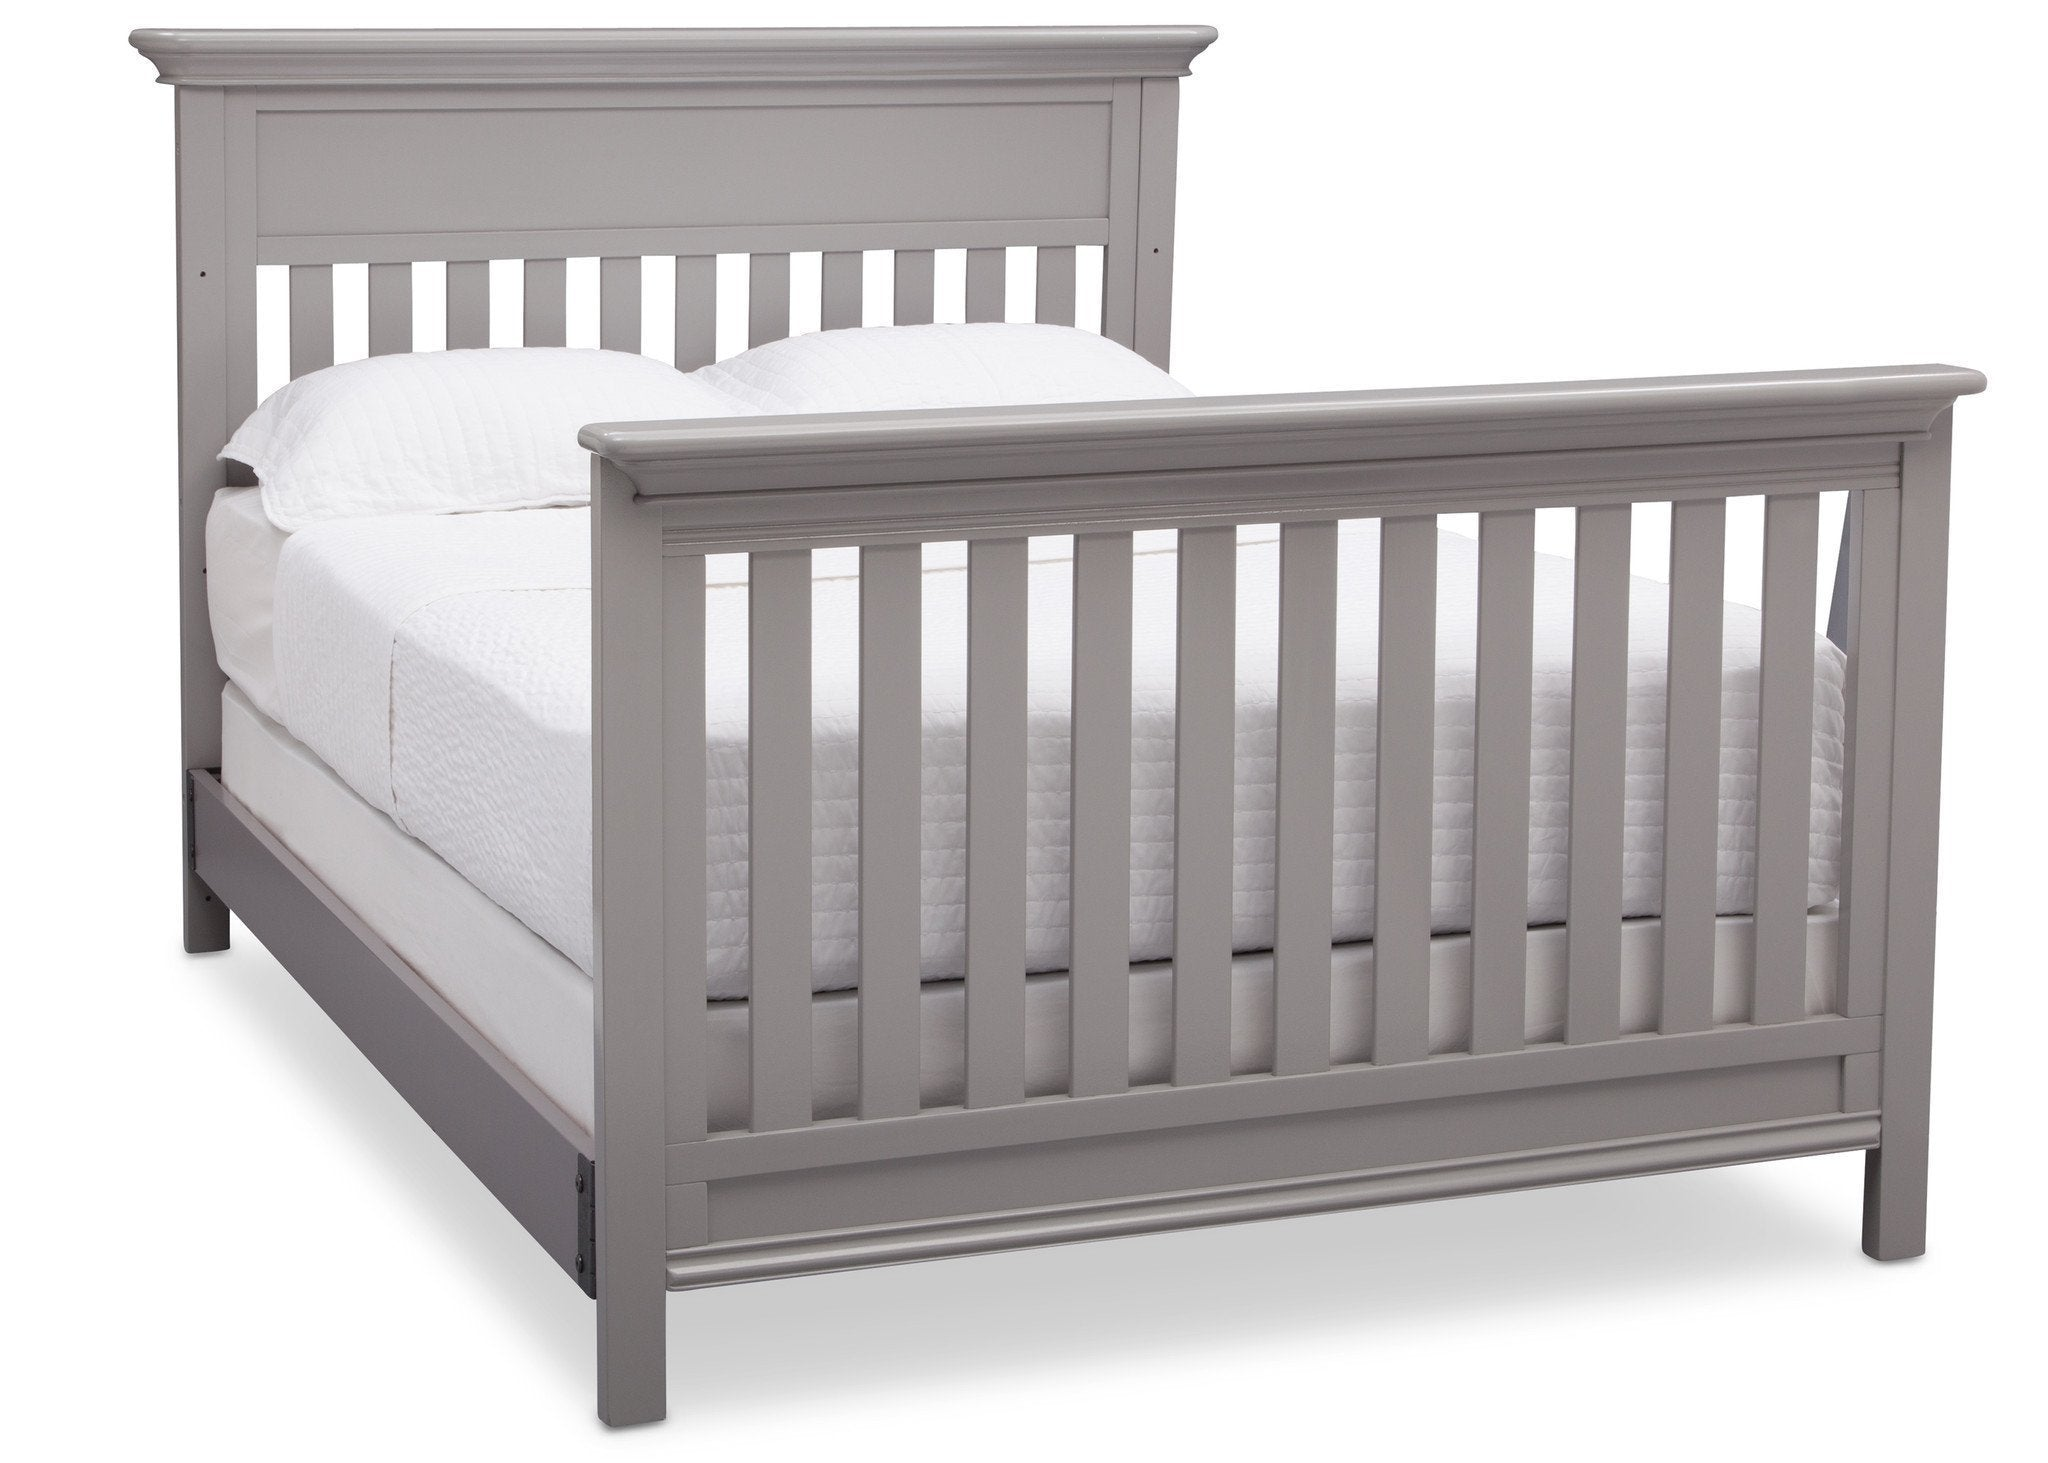 Serta Grey (026) Fernwood 4-in-1 Crib, Side View with Full Size Platform Bed Kit (for 4-in-1 Cribs) 700850 b7b